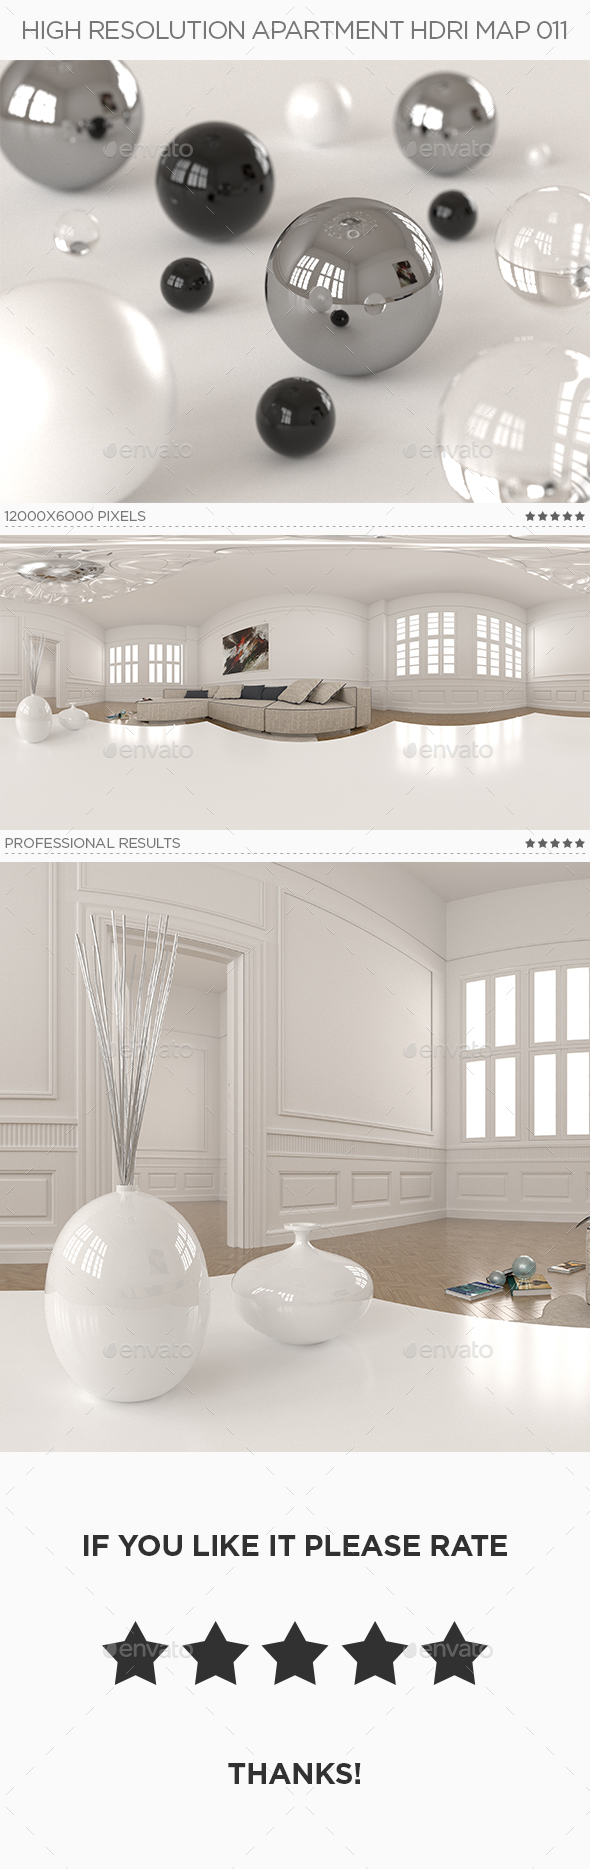 High Resolution Apartment HDRi Map 011 - 3DOcean Item for Sale